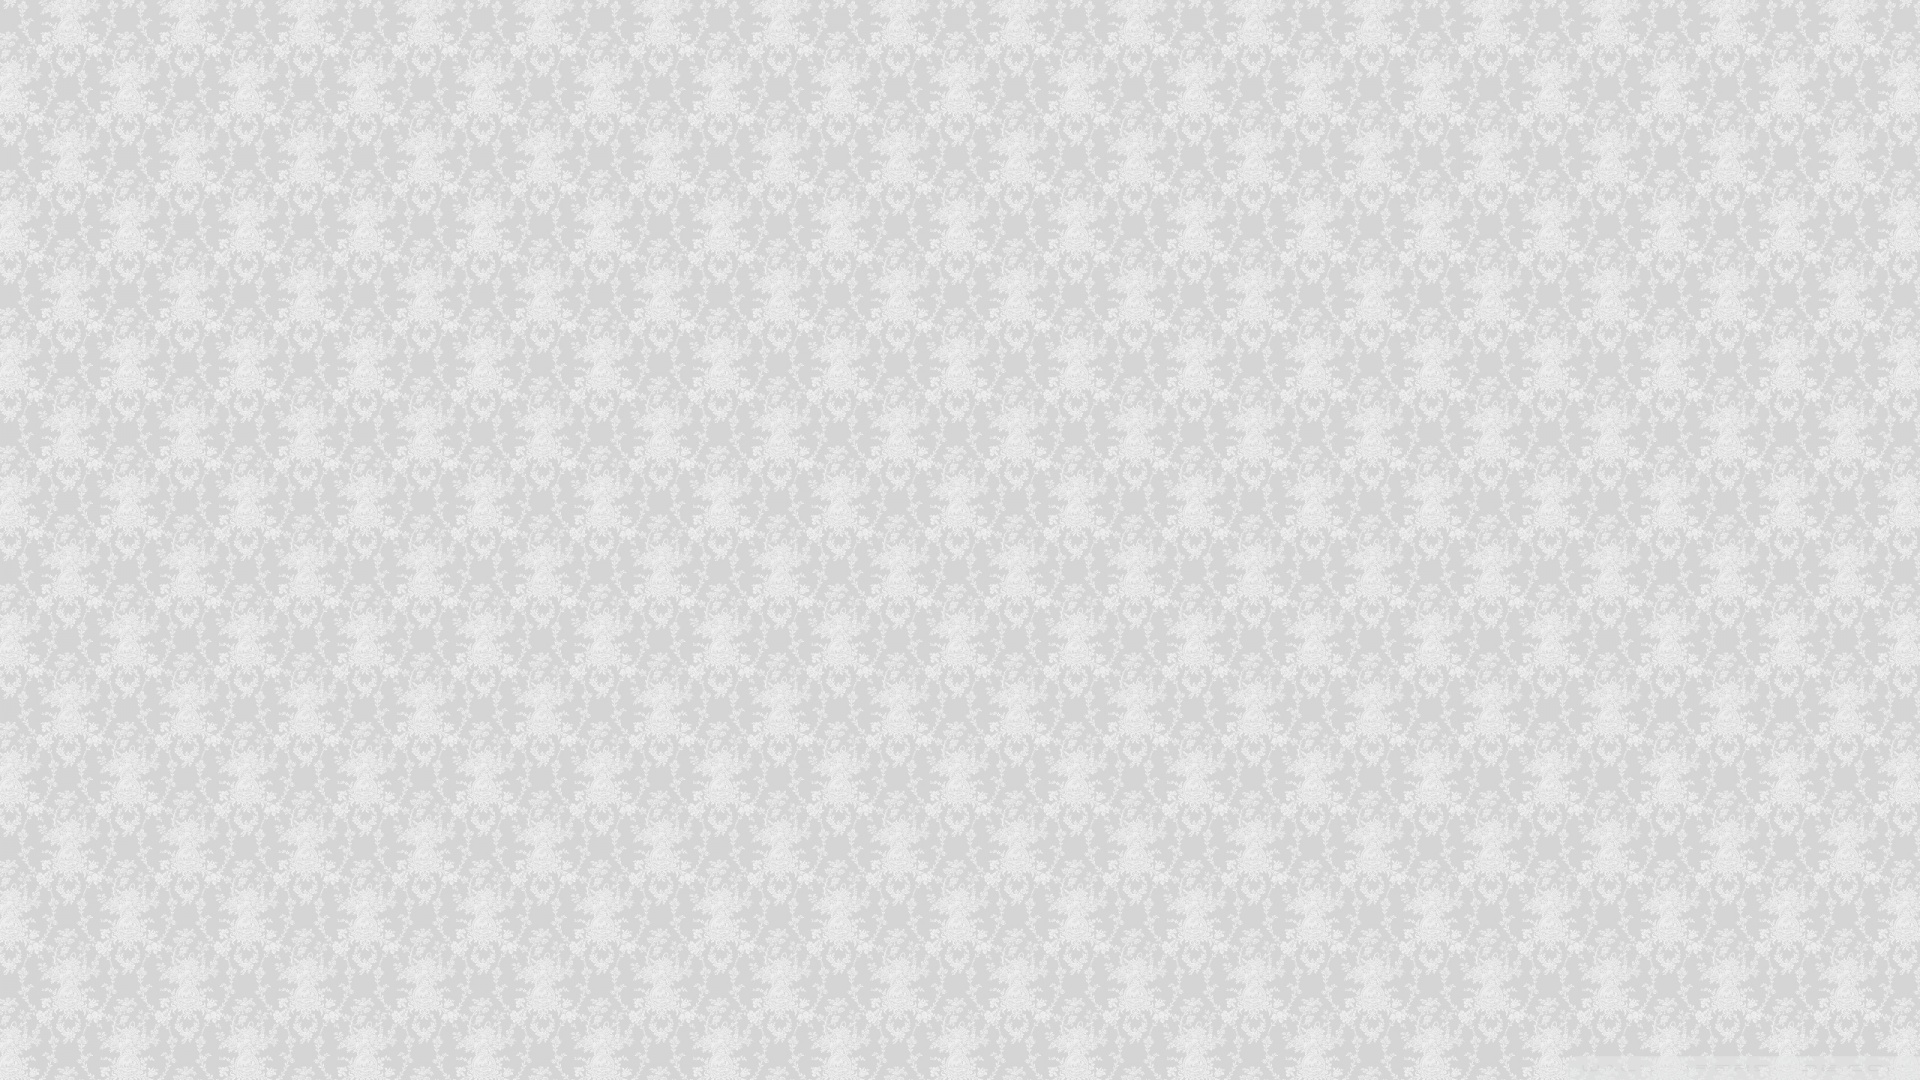 Download white background wallpapers 1920x1080 gallery - White background 1920x1080 ...